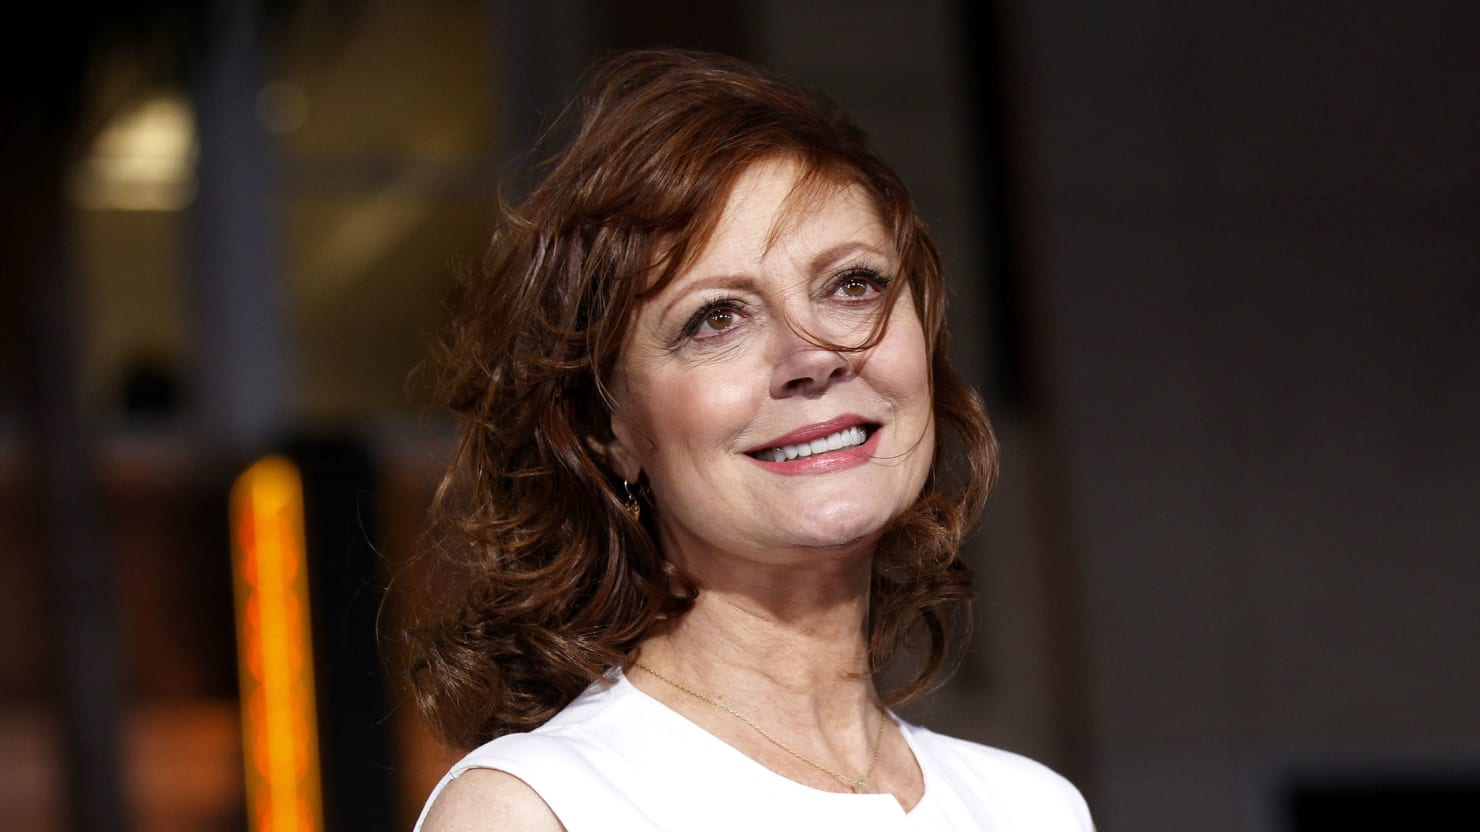 Images Susan Sarandon nude (68 photos), Ass, Cleavage, Feet, in bikini 2015